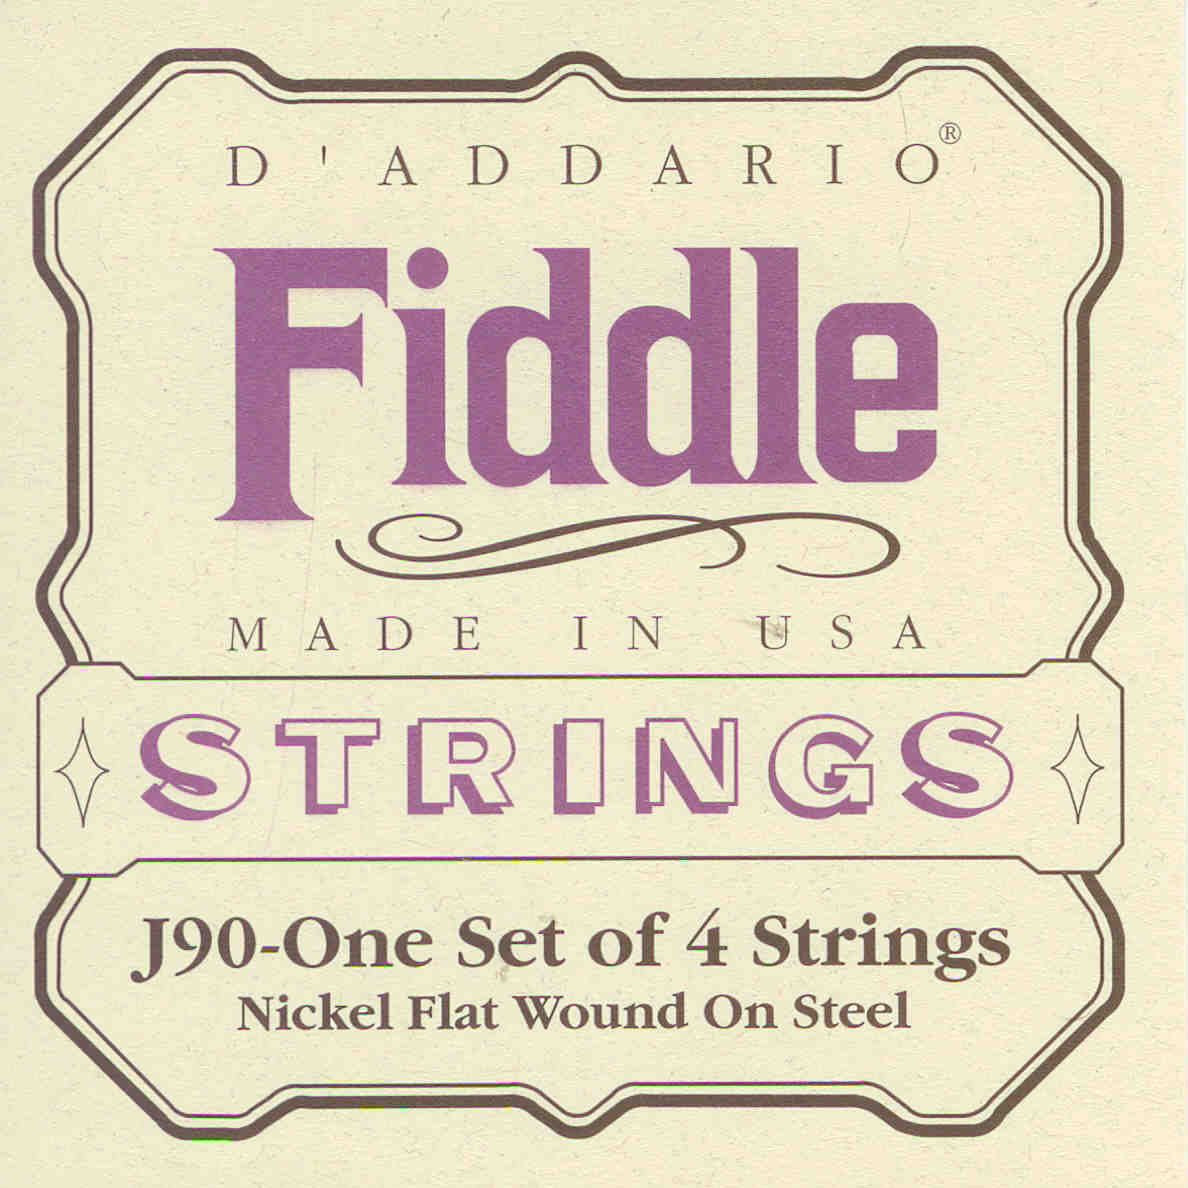 Fiddle Violin Strings (D'Addario)